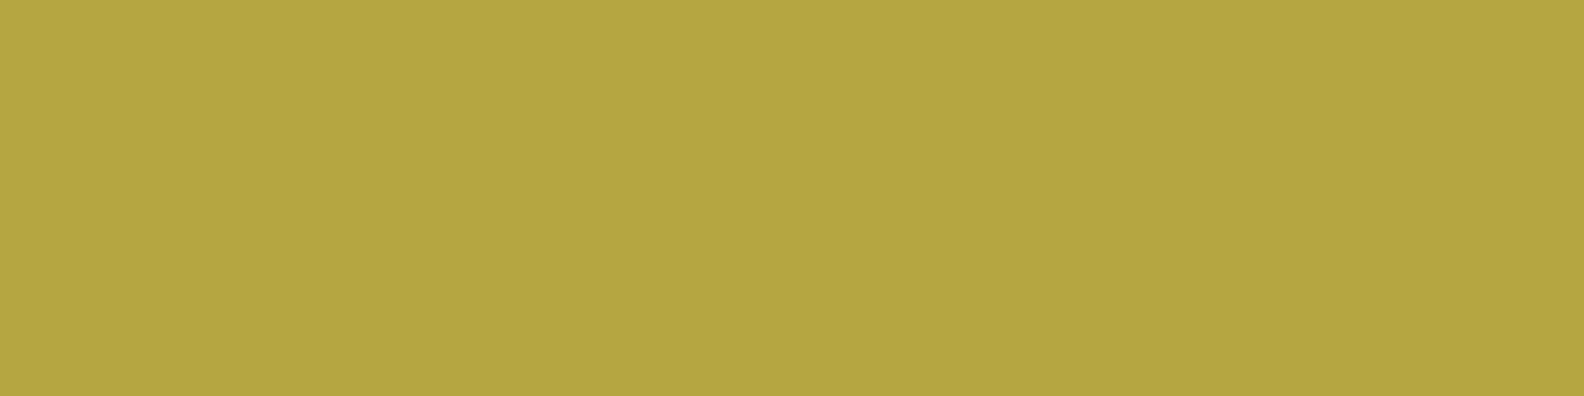 1584x396 Brass Solid Color Background